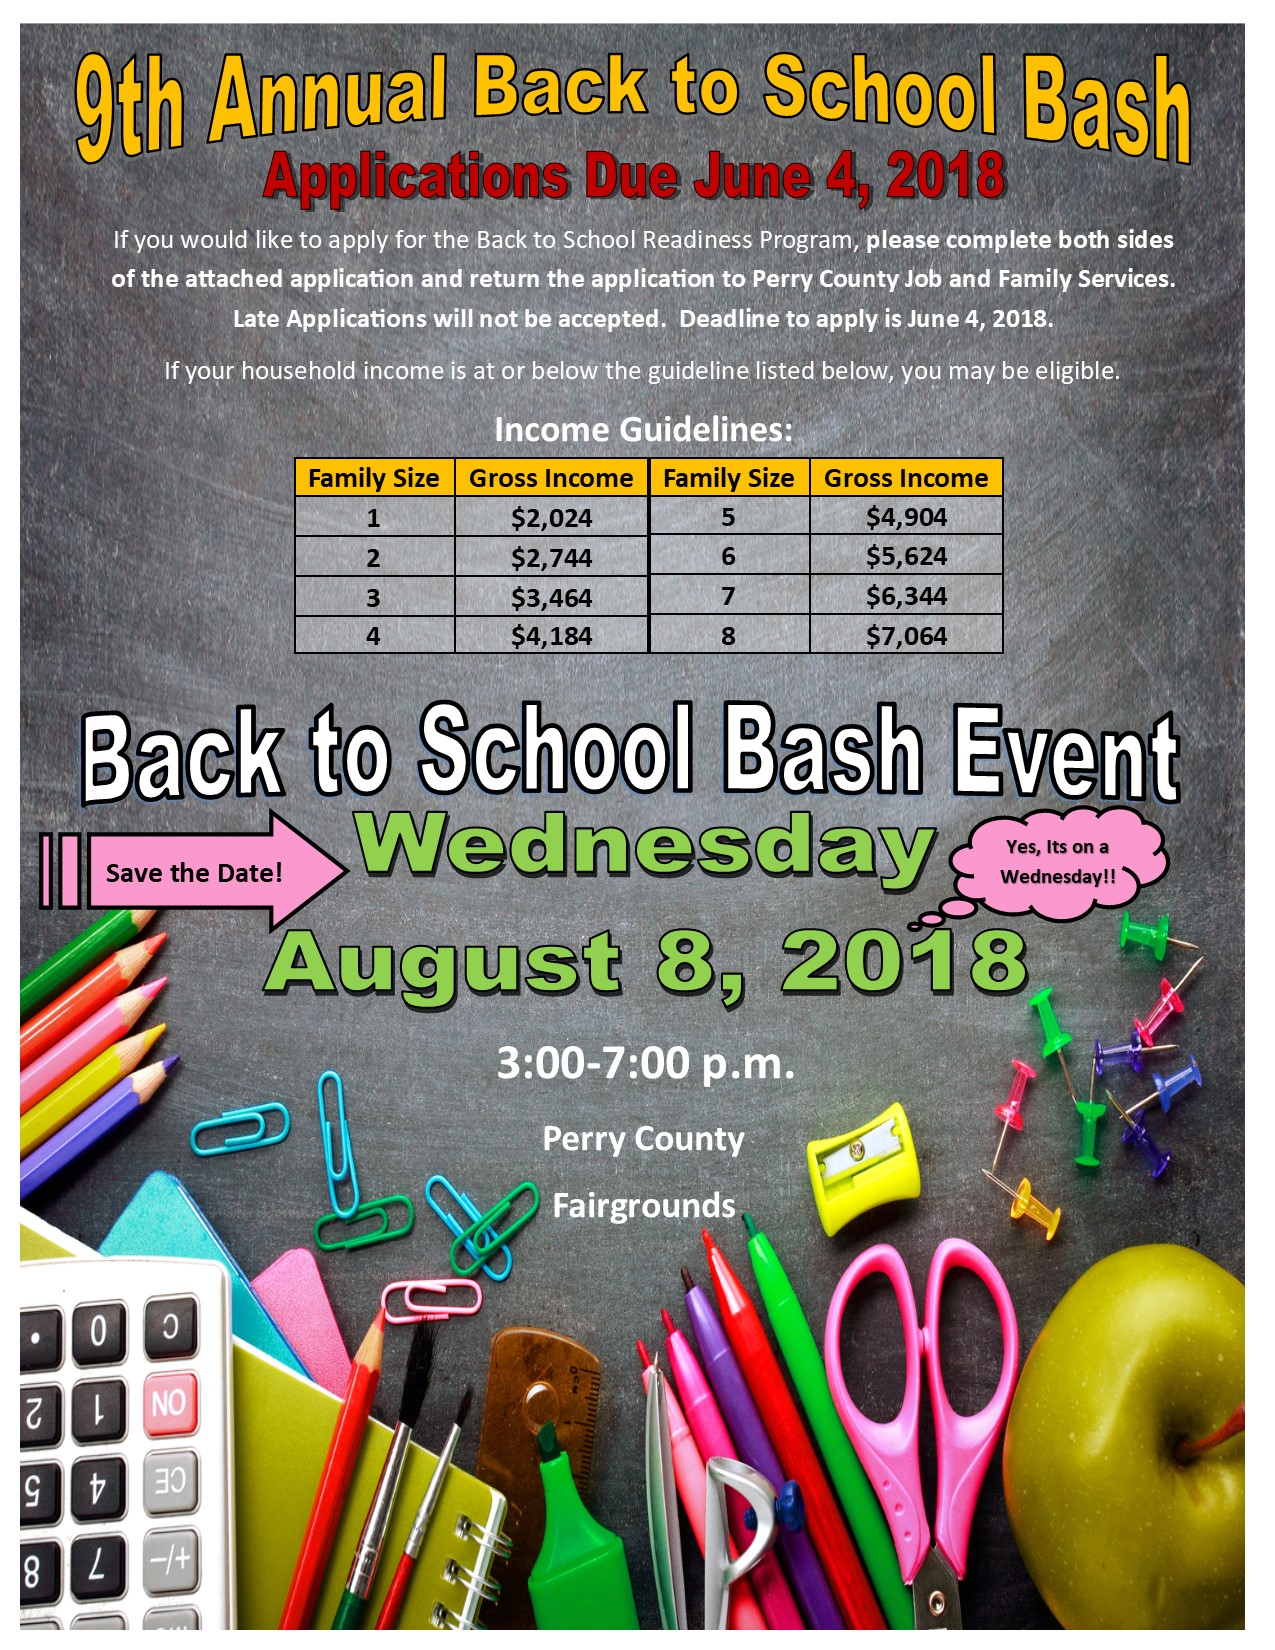 Back to School Bash Applications are Due June 4, 2018